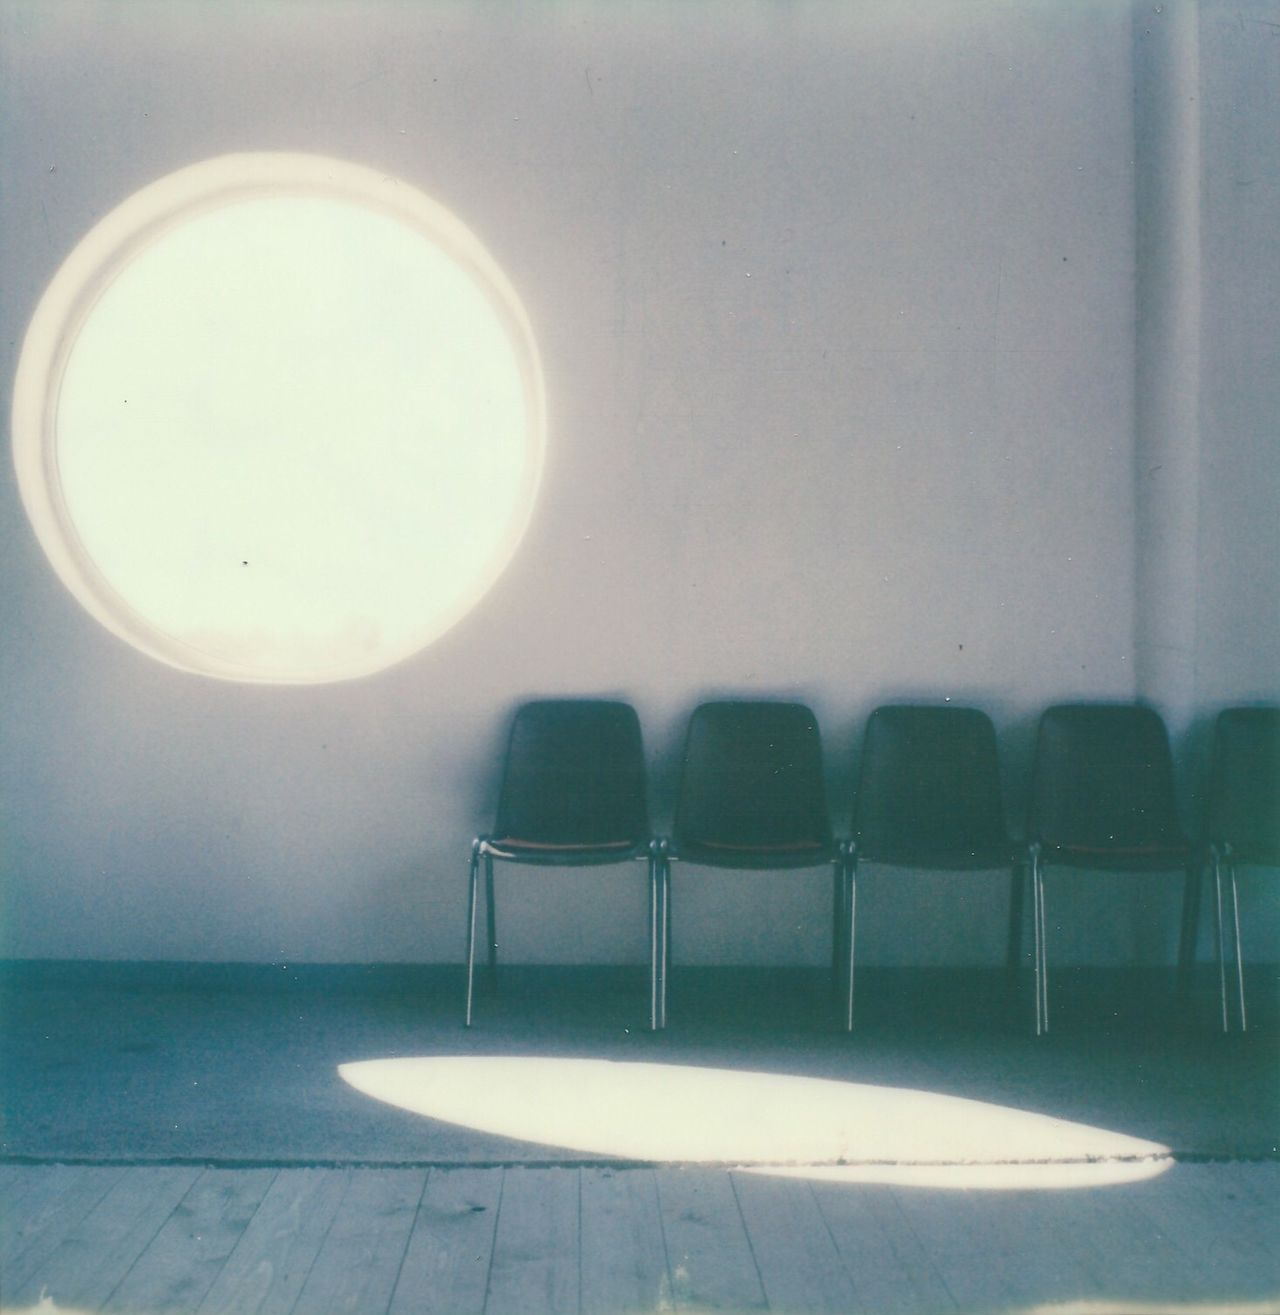 Light And Shadow Light Indoors  Chair Room Analogue Photography Analog Polaroid Instagood Geometry Circle Minimalism Minimal Minimalobsession Minimalist Minimalistic